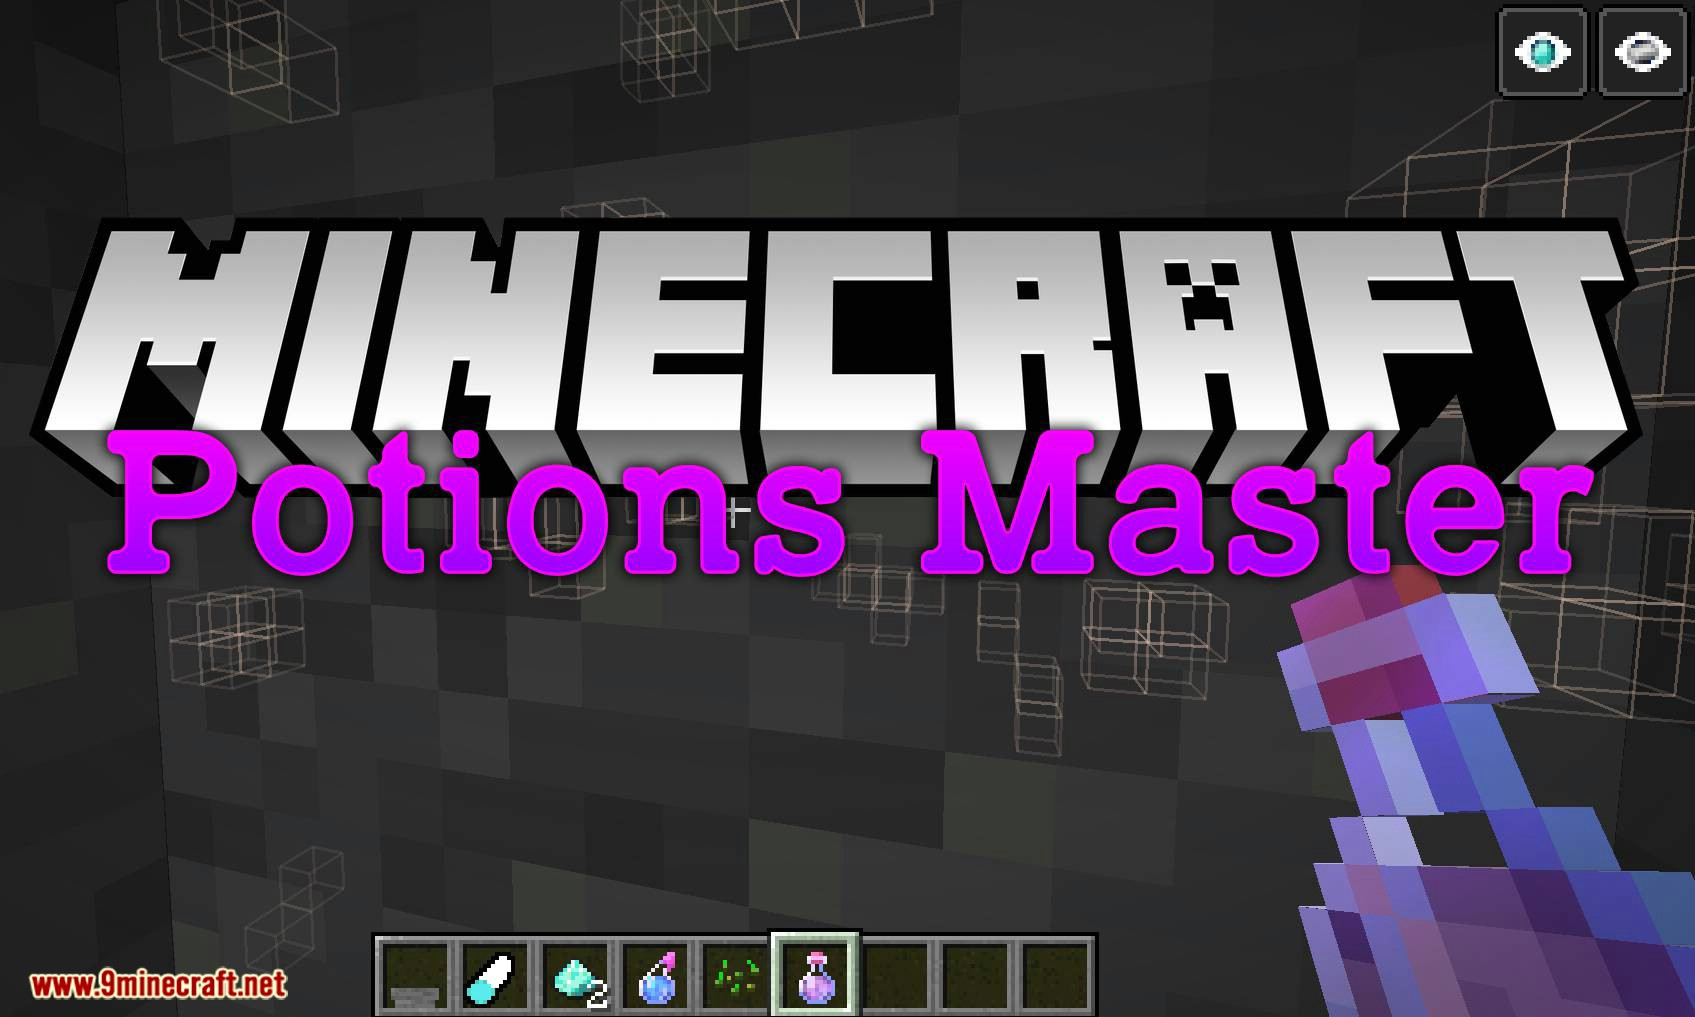 Potions Master mod for minecraft logo